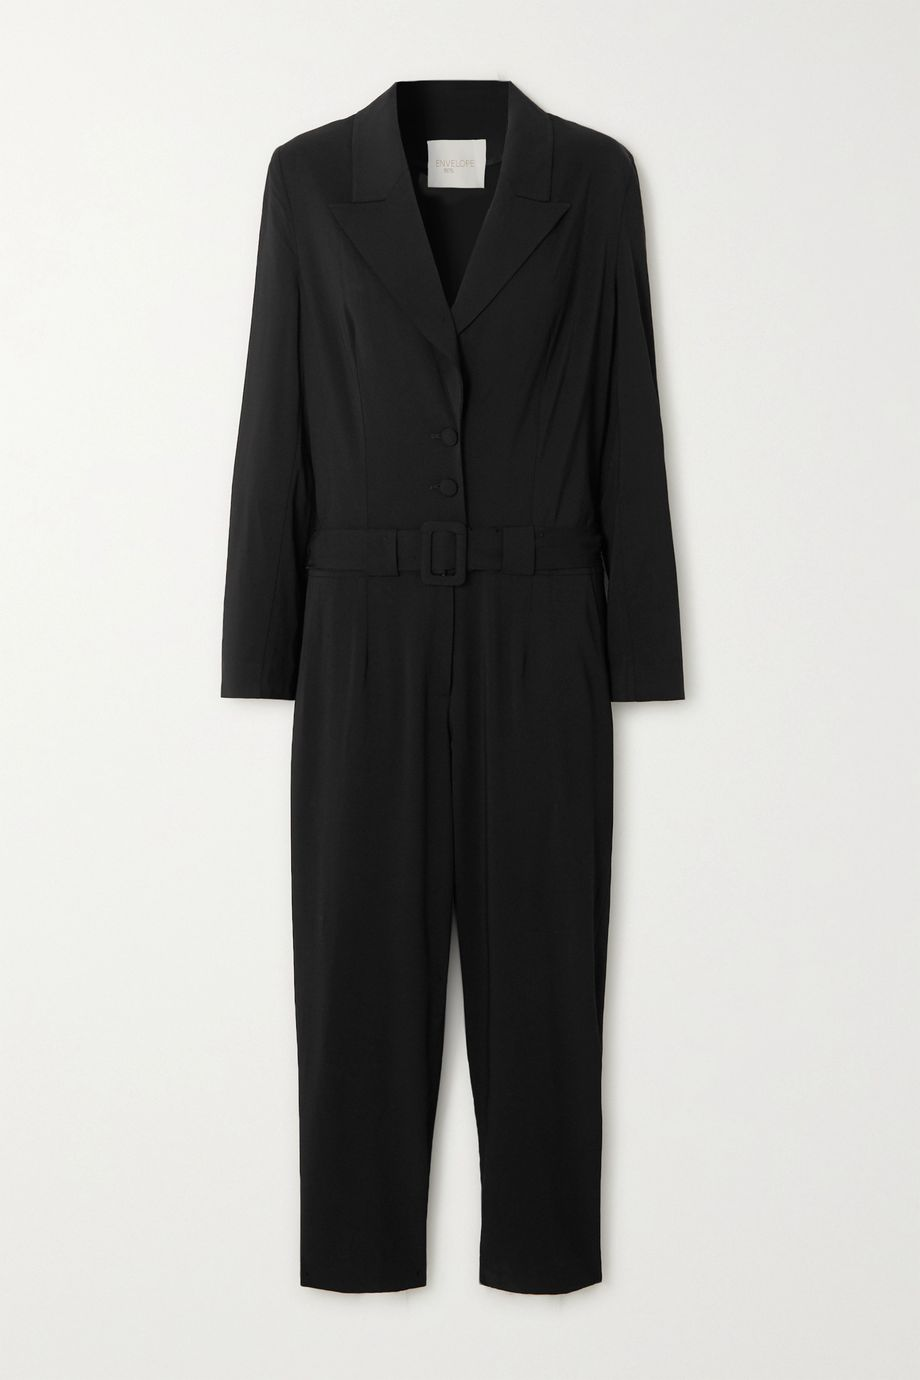 Envelope1976 + NET SUSTAIN Bodega belted wool jumpsuit